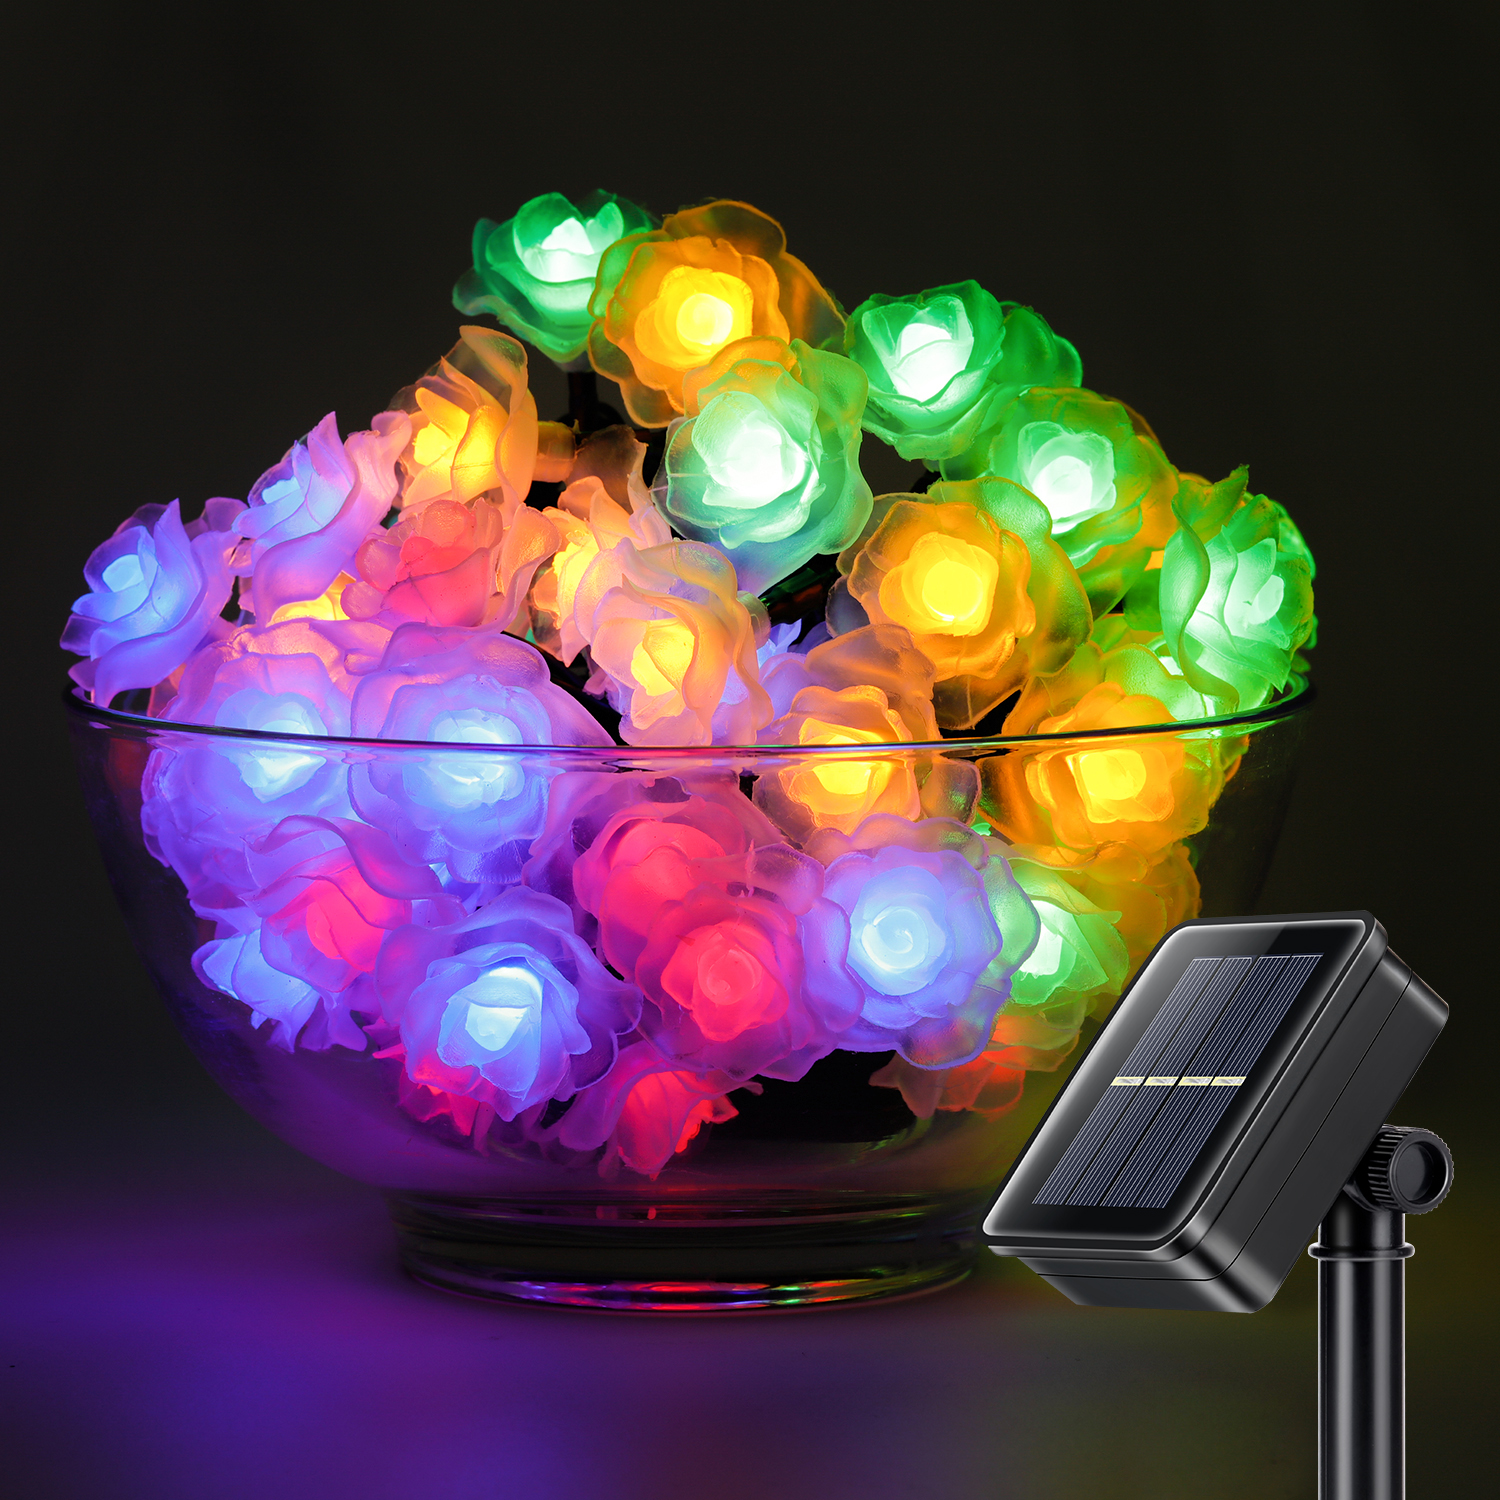 50led 26ft fairy string lights rose flower decorative solar lights outdoor funny ebay - Decorative garden lights ...